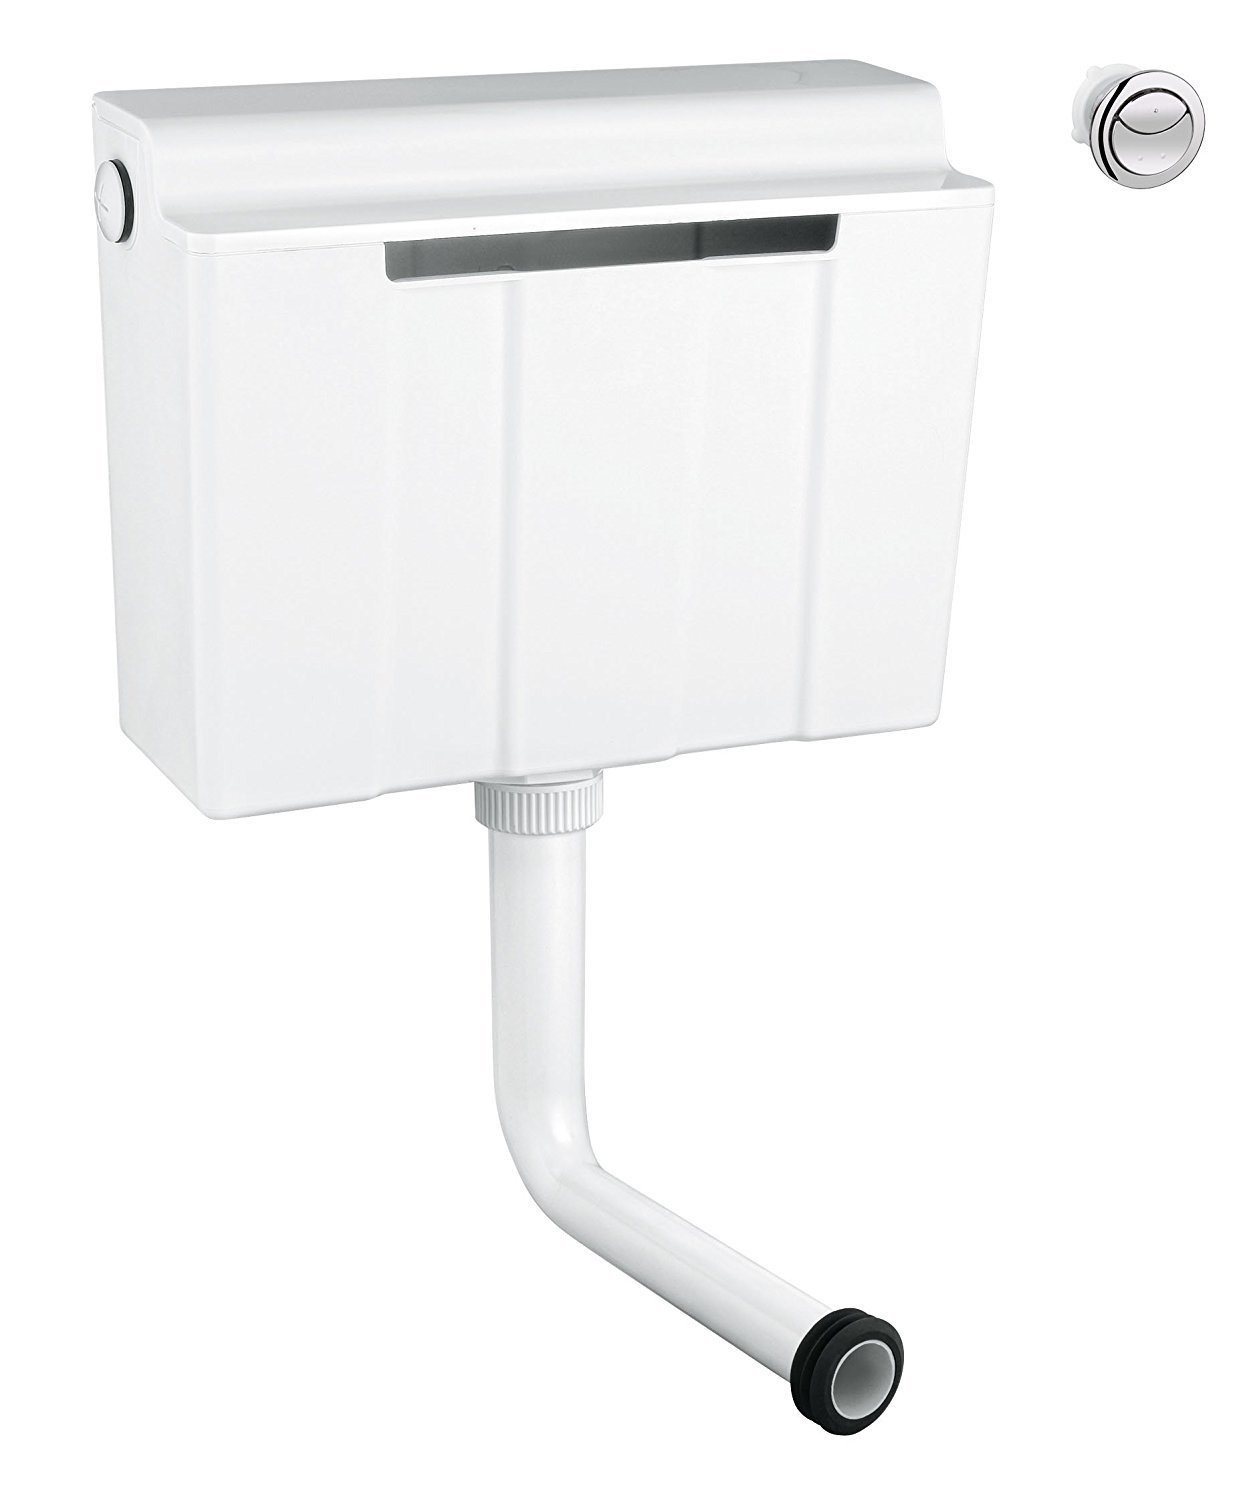 GROHE 39053000 | Concealed Flushing Cistern